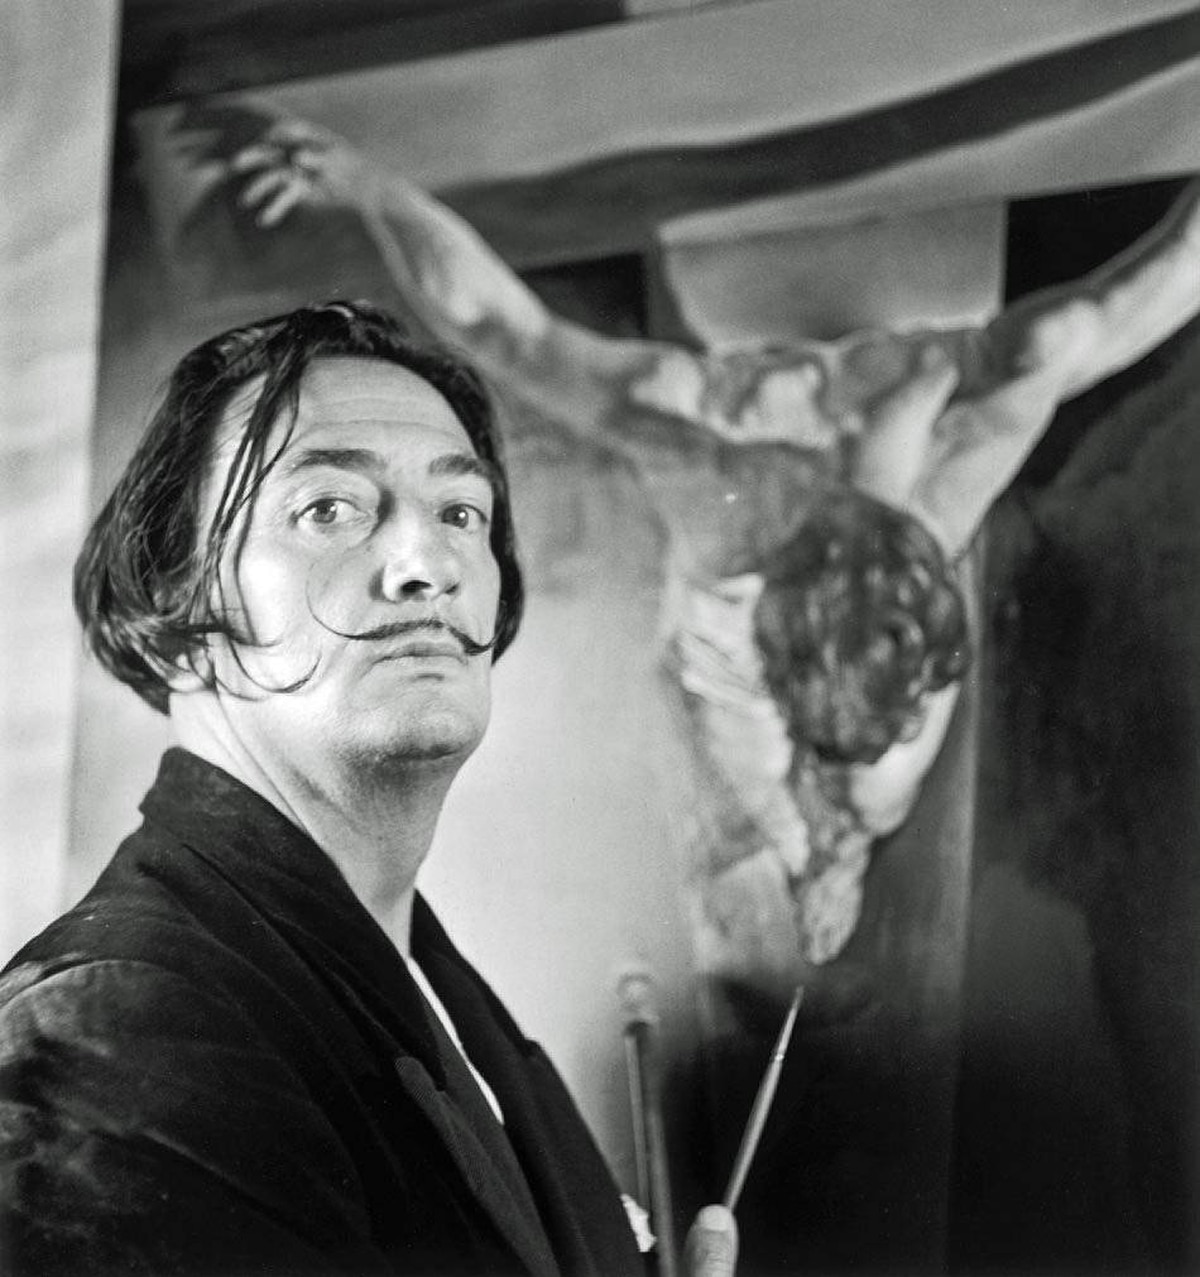 Salvador Dali stands next to his painting Christ of St John on the Cross, Cadaques, Spain, Nov. 17, 1951. The Surrealists will be featured at the Vancouver Art Gallery this summer.